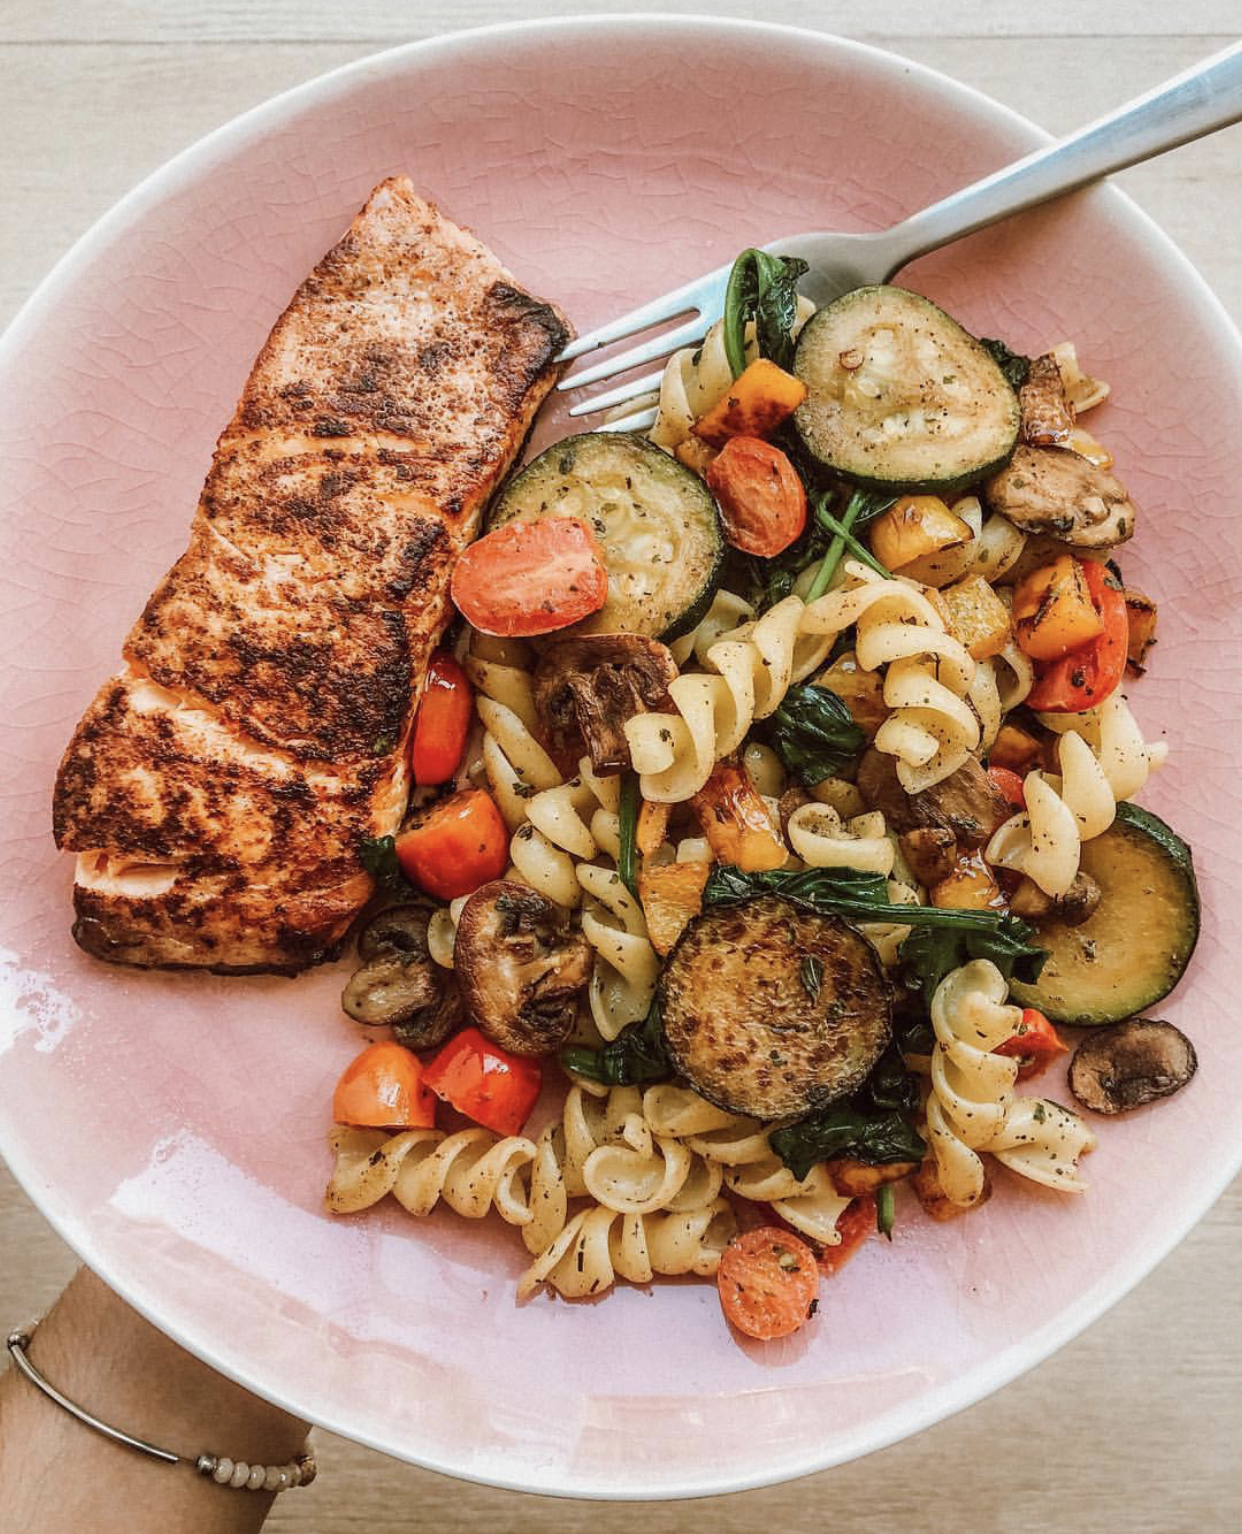 Plate with cooked salmon accompanied by pasta and vegetables.